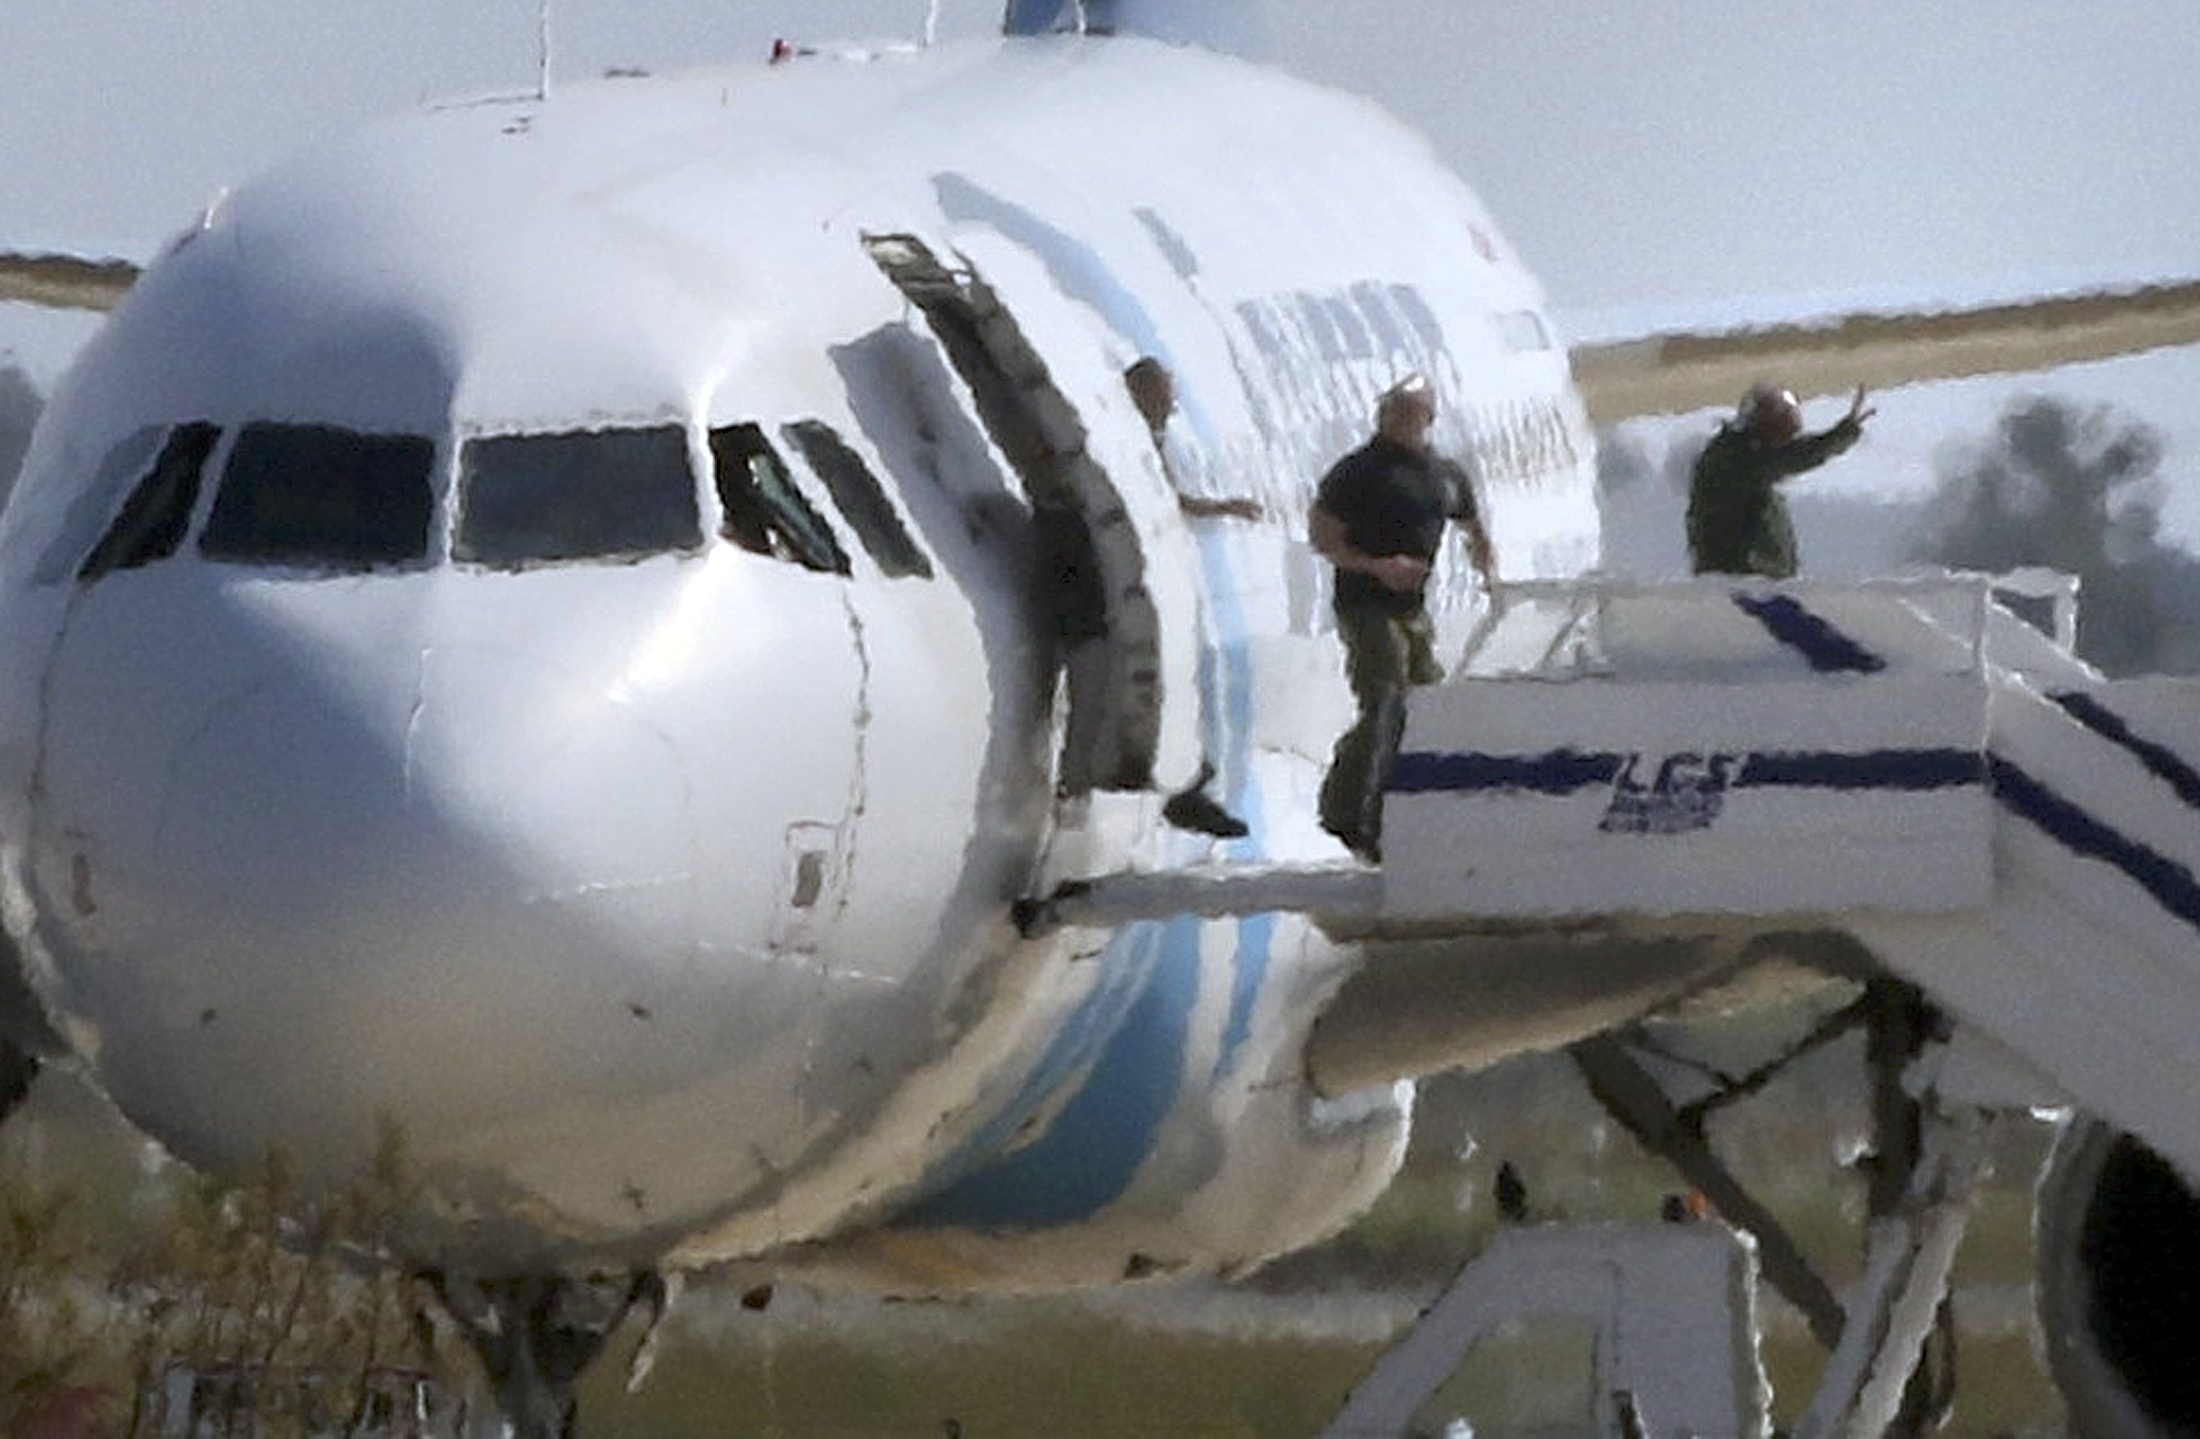 Unidentified people leave the hijacked Egyptair Airbus A320 at Larnaca Airport in Larnaca, Cyprus